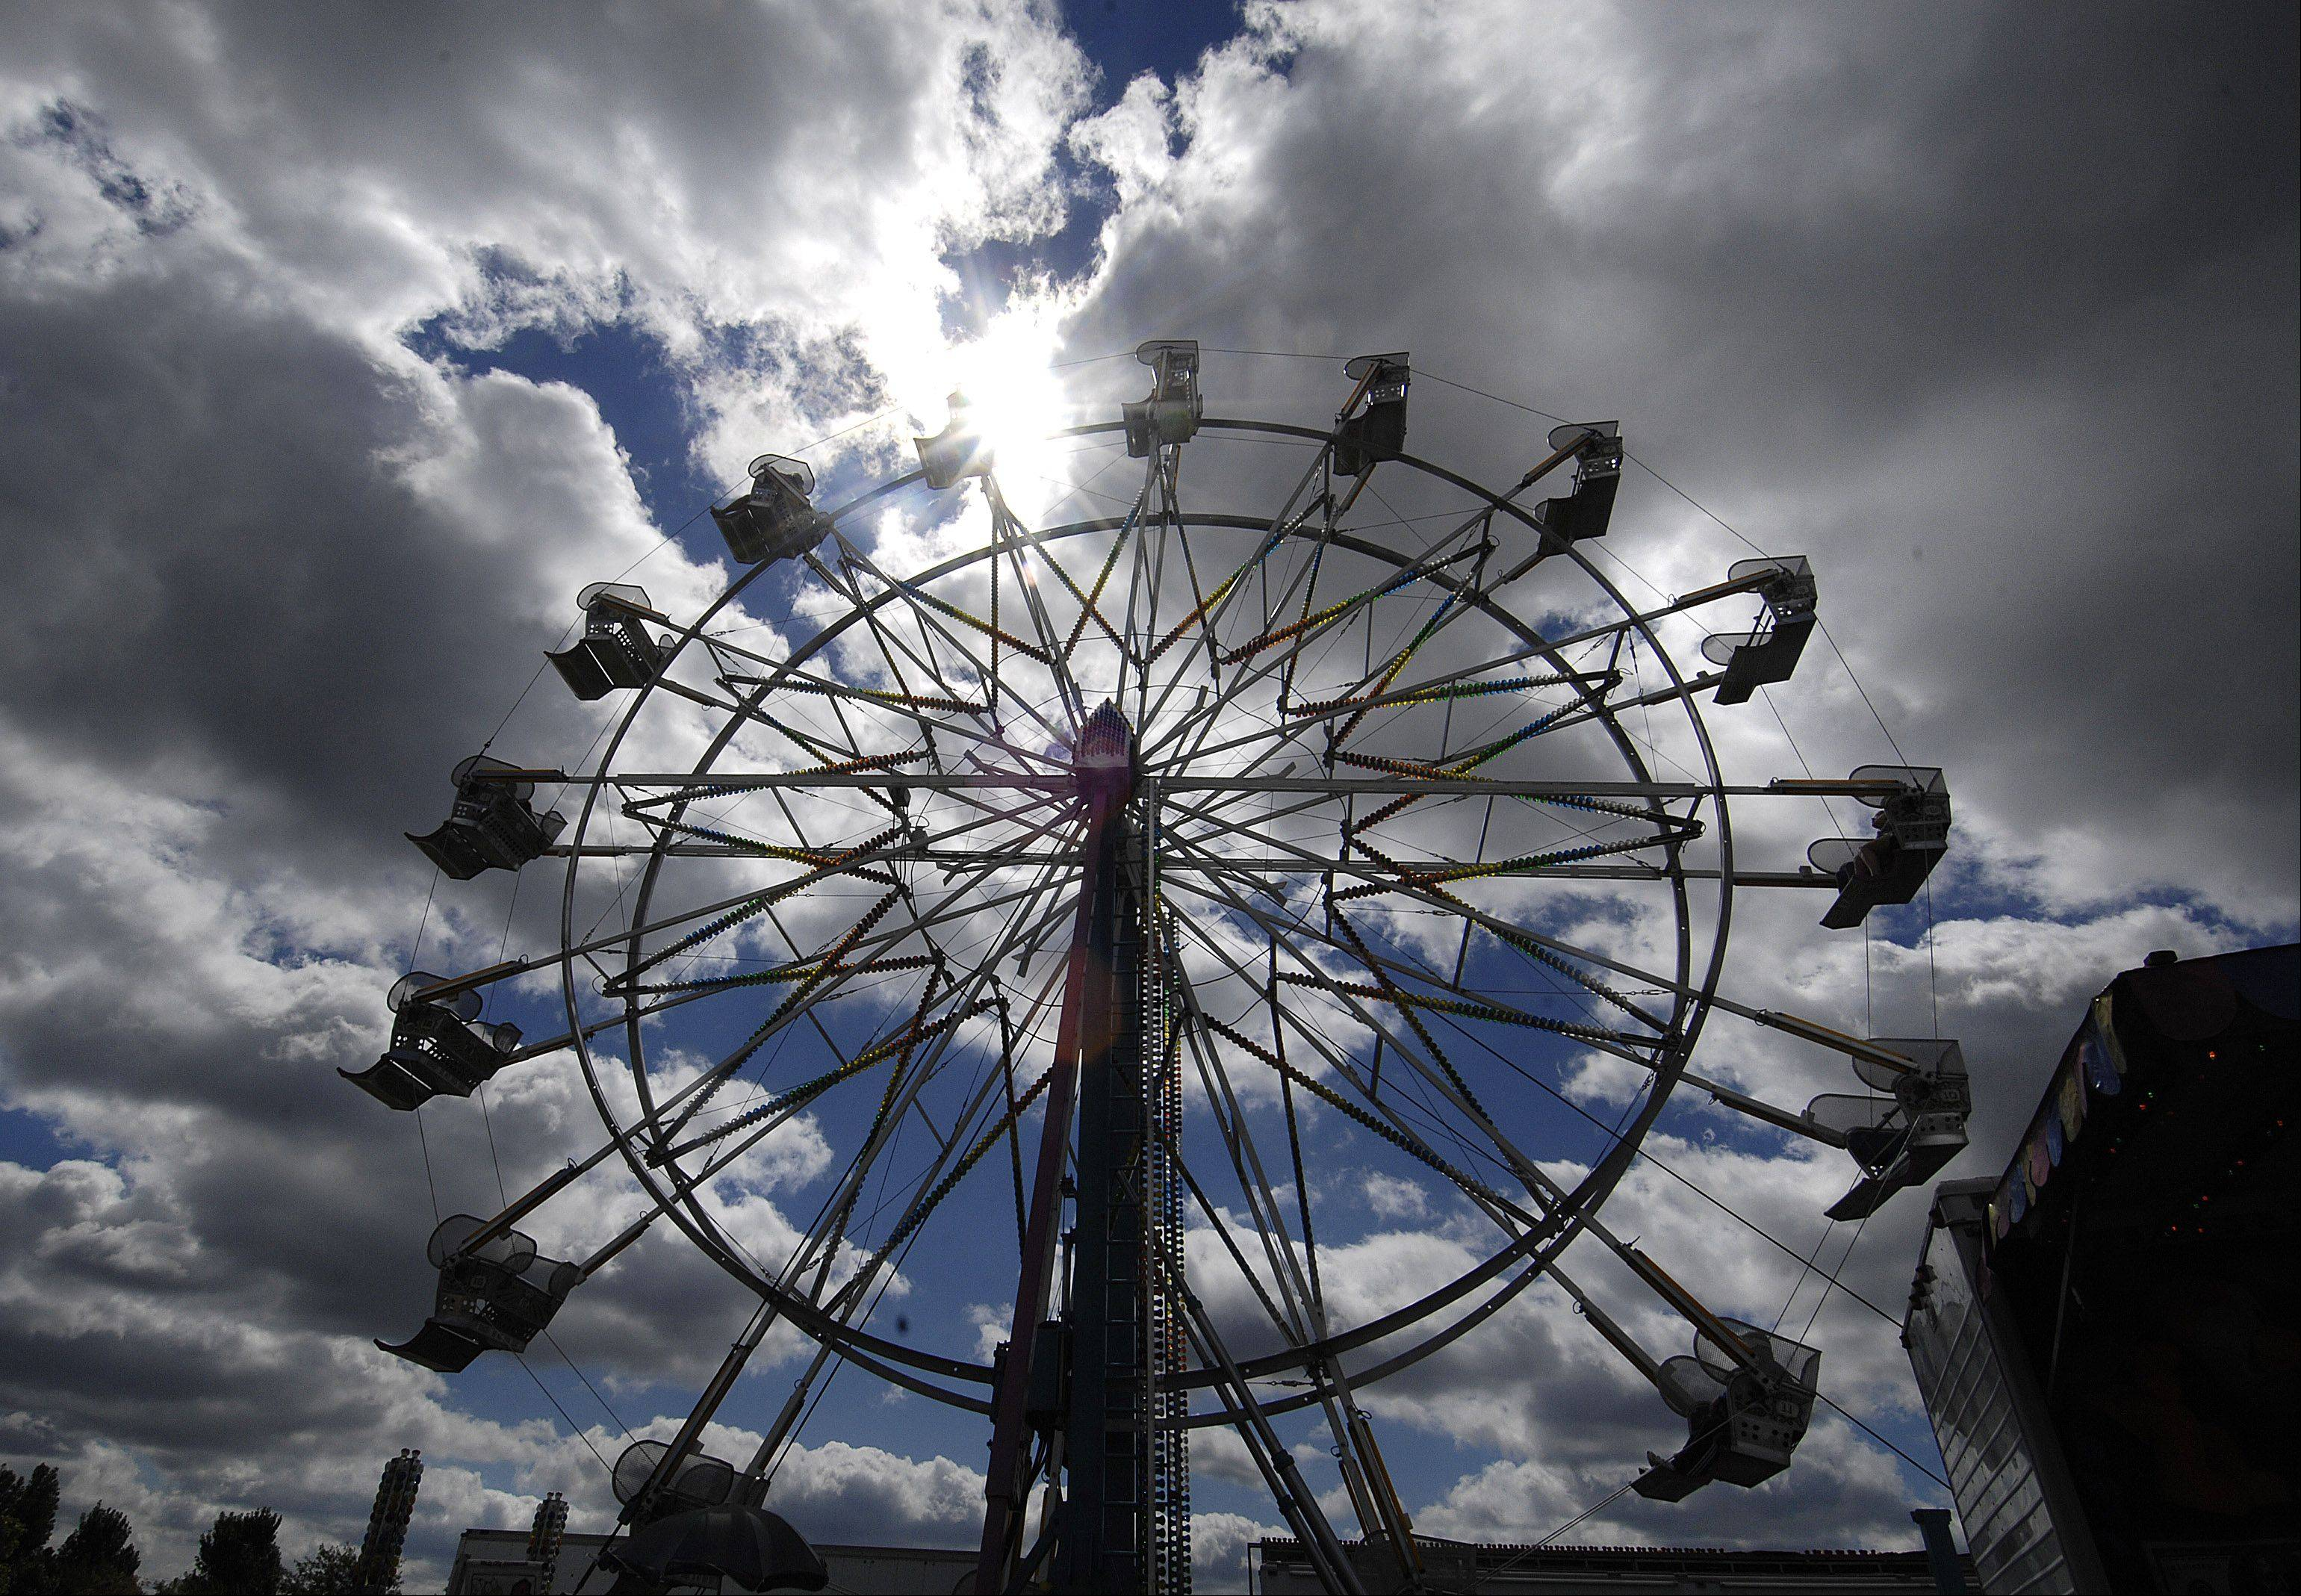 Carnival rides are a big part of Lake in the Hills' annual Summer Sunset Festival, held at Sunset Park on Miller Road. The annual three-day festival ends with fireworks at 9:30 p.m. Sunday, Sept. 2.